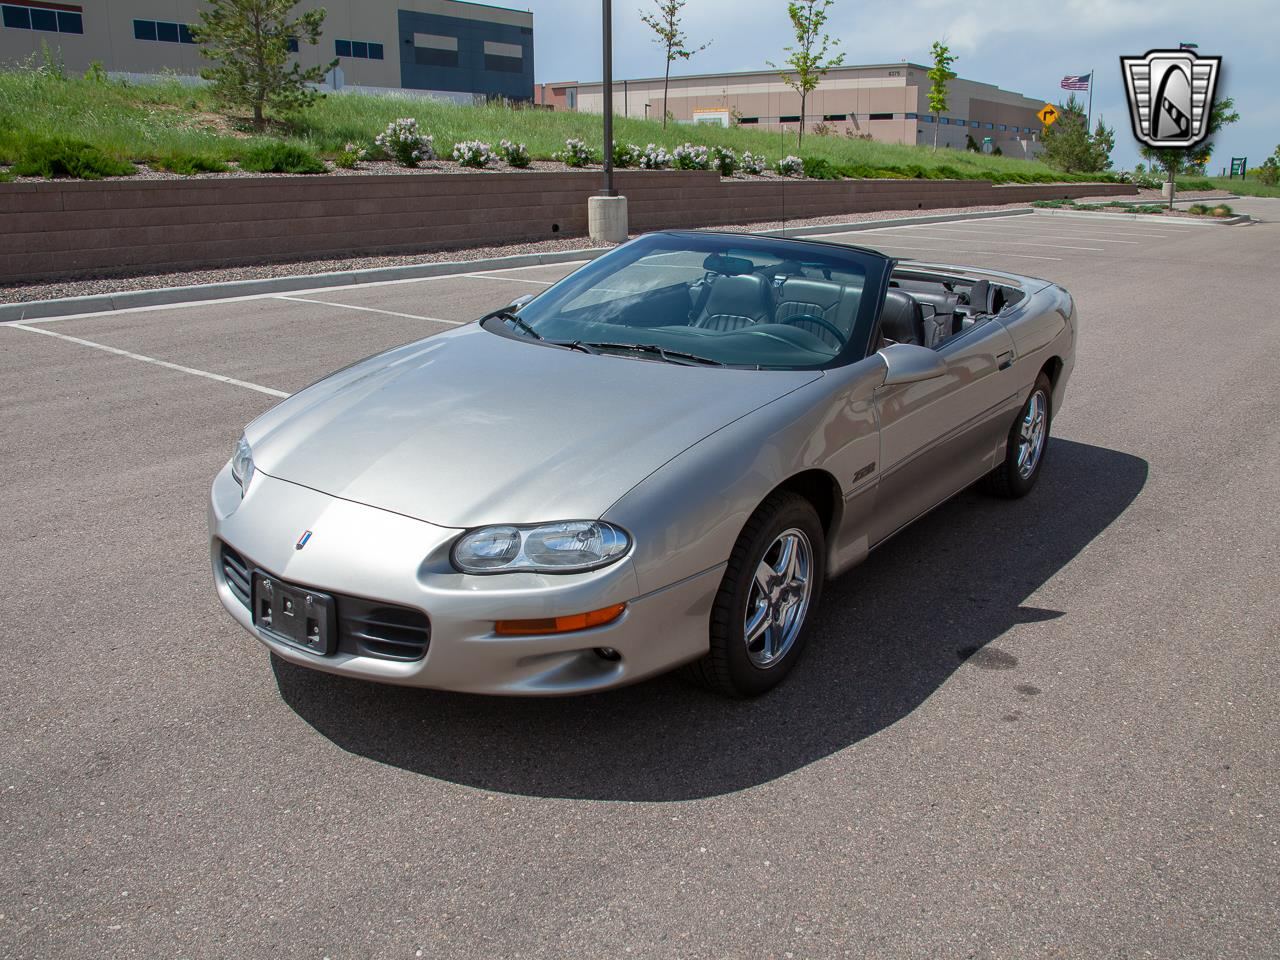 2000 Chevrolet Camaro (CC-1340927) for sale in O'Fallon, Illinois